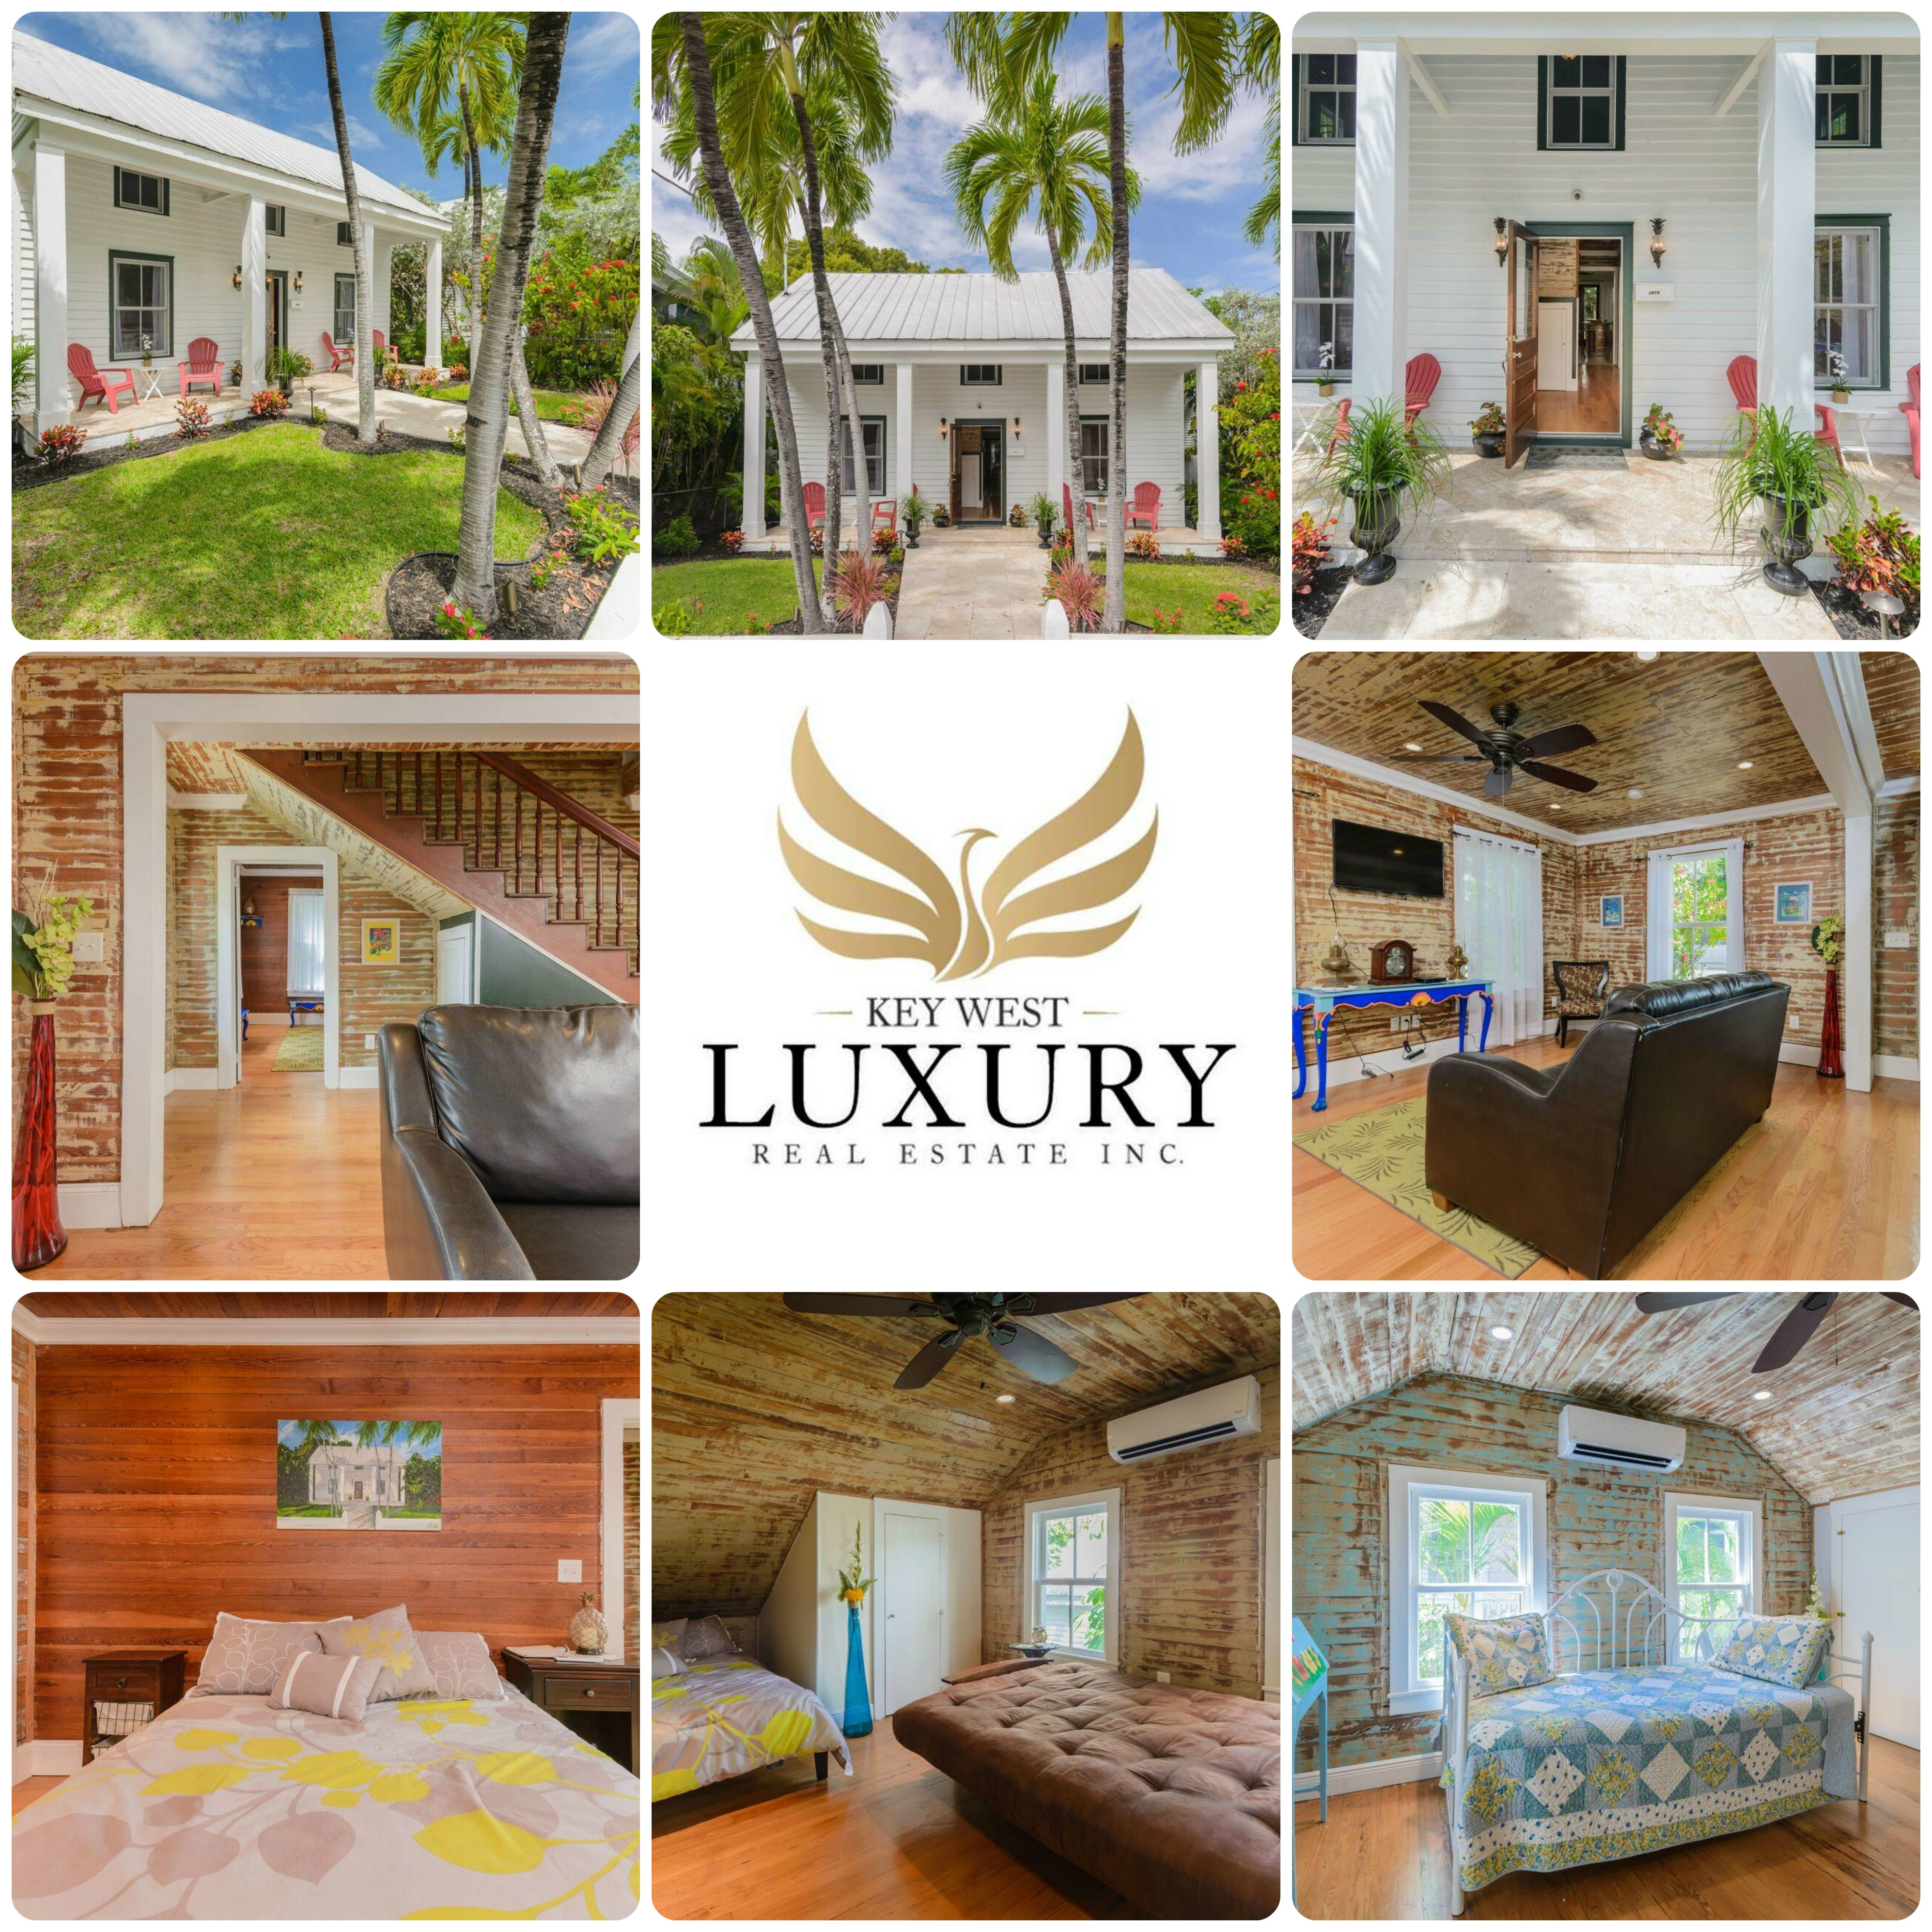 Old Town, Key West | Homes for Sale | KeyWestLuxuryRealEstateInc.com | Key West Luxury Real Estate Inc